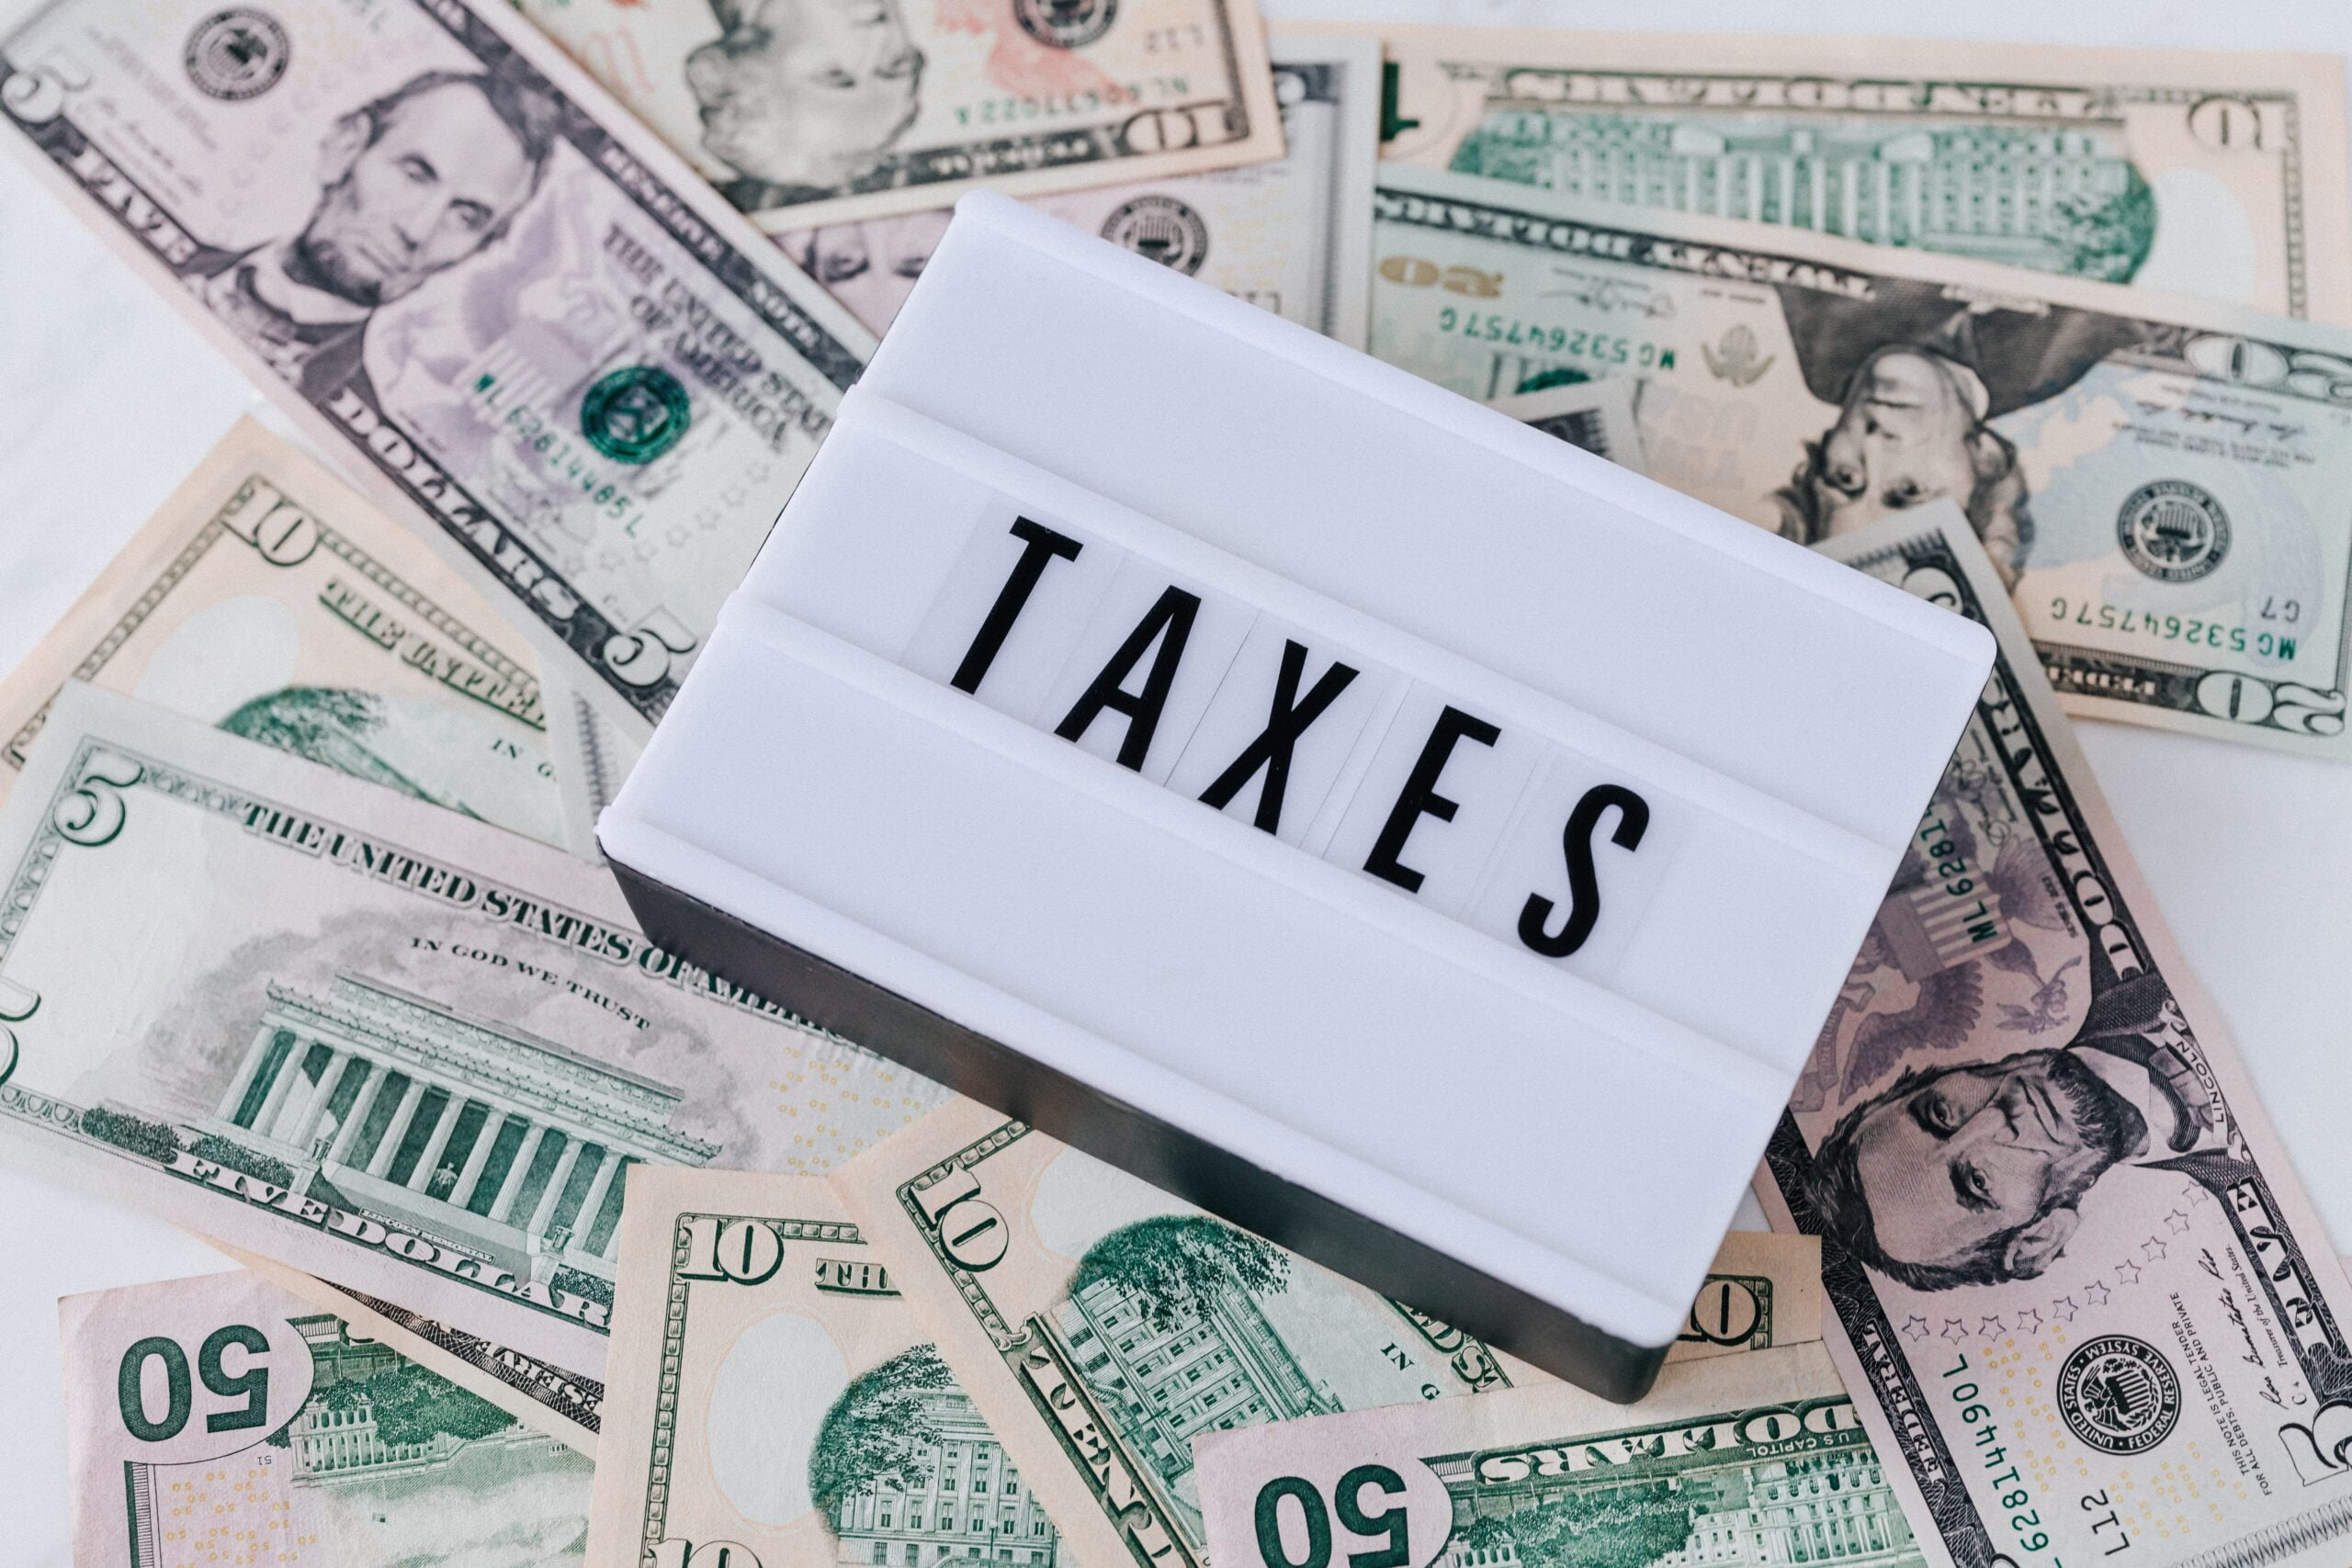 What you REALLY need is a Tax Resolution Specialist!